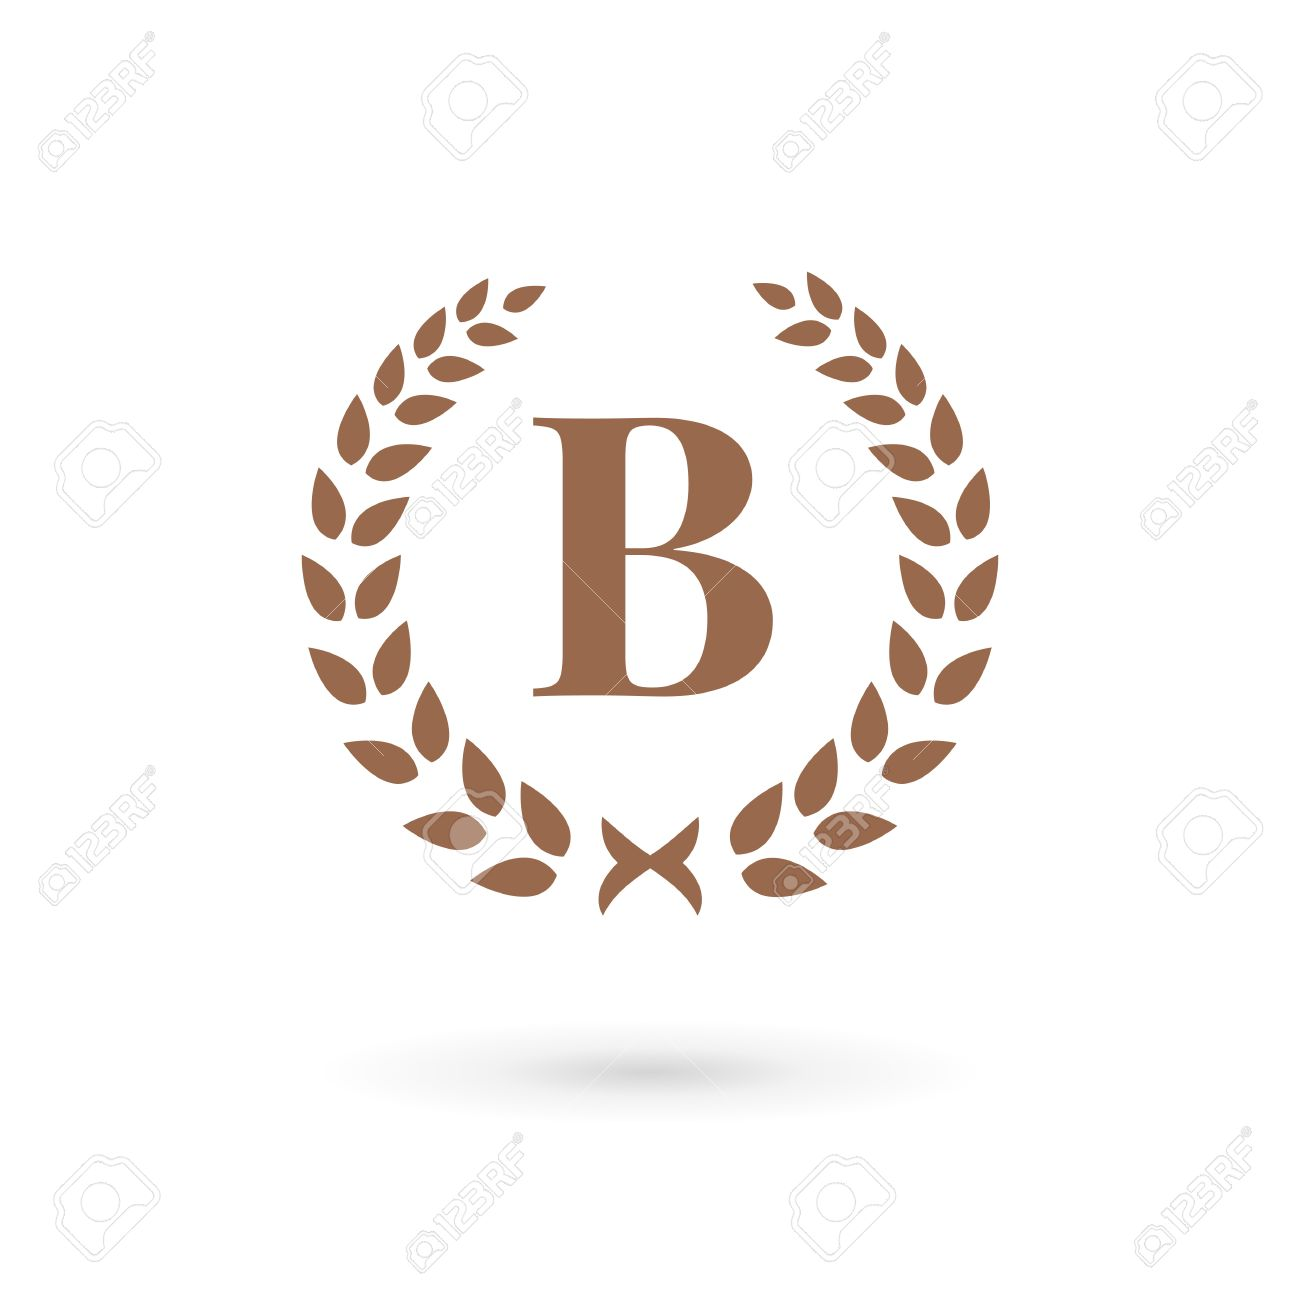 letter b laurel wreath logo icon design template elements stock vector 32592477